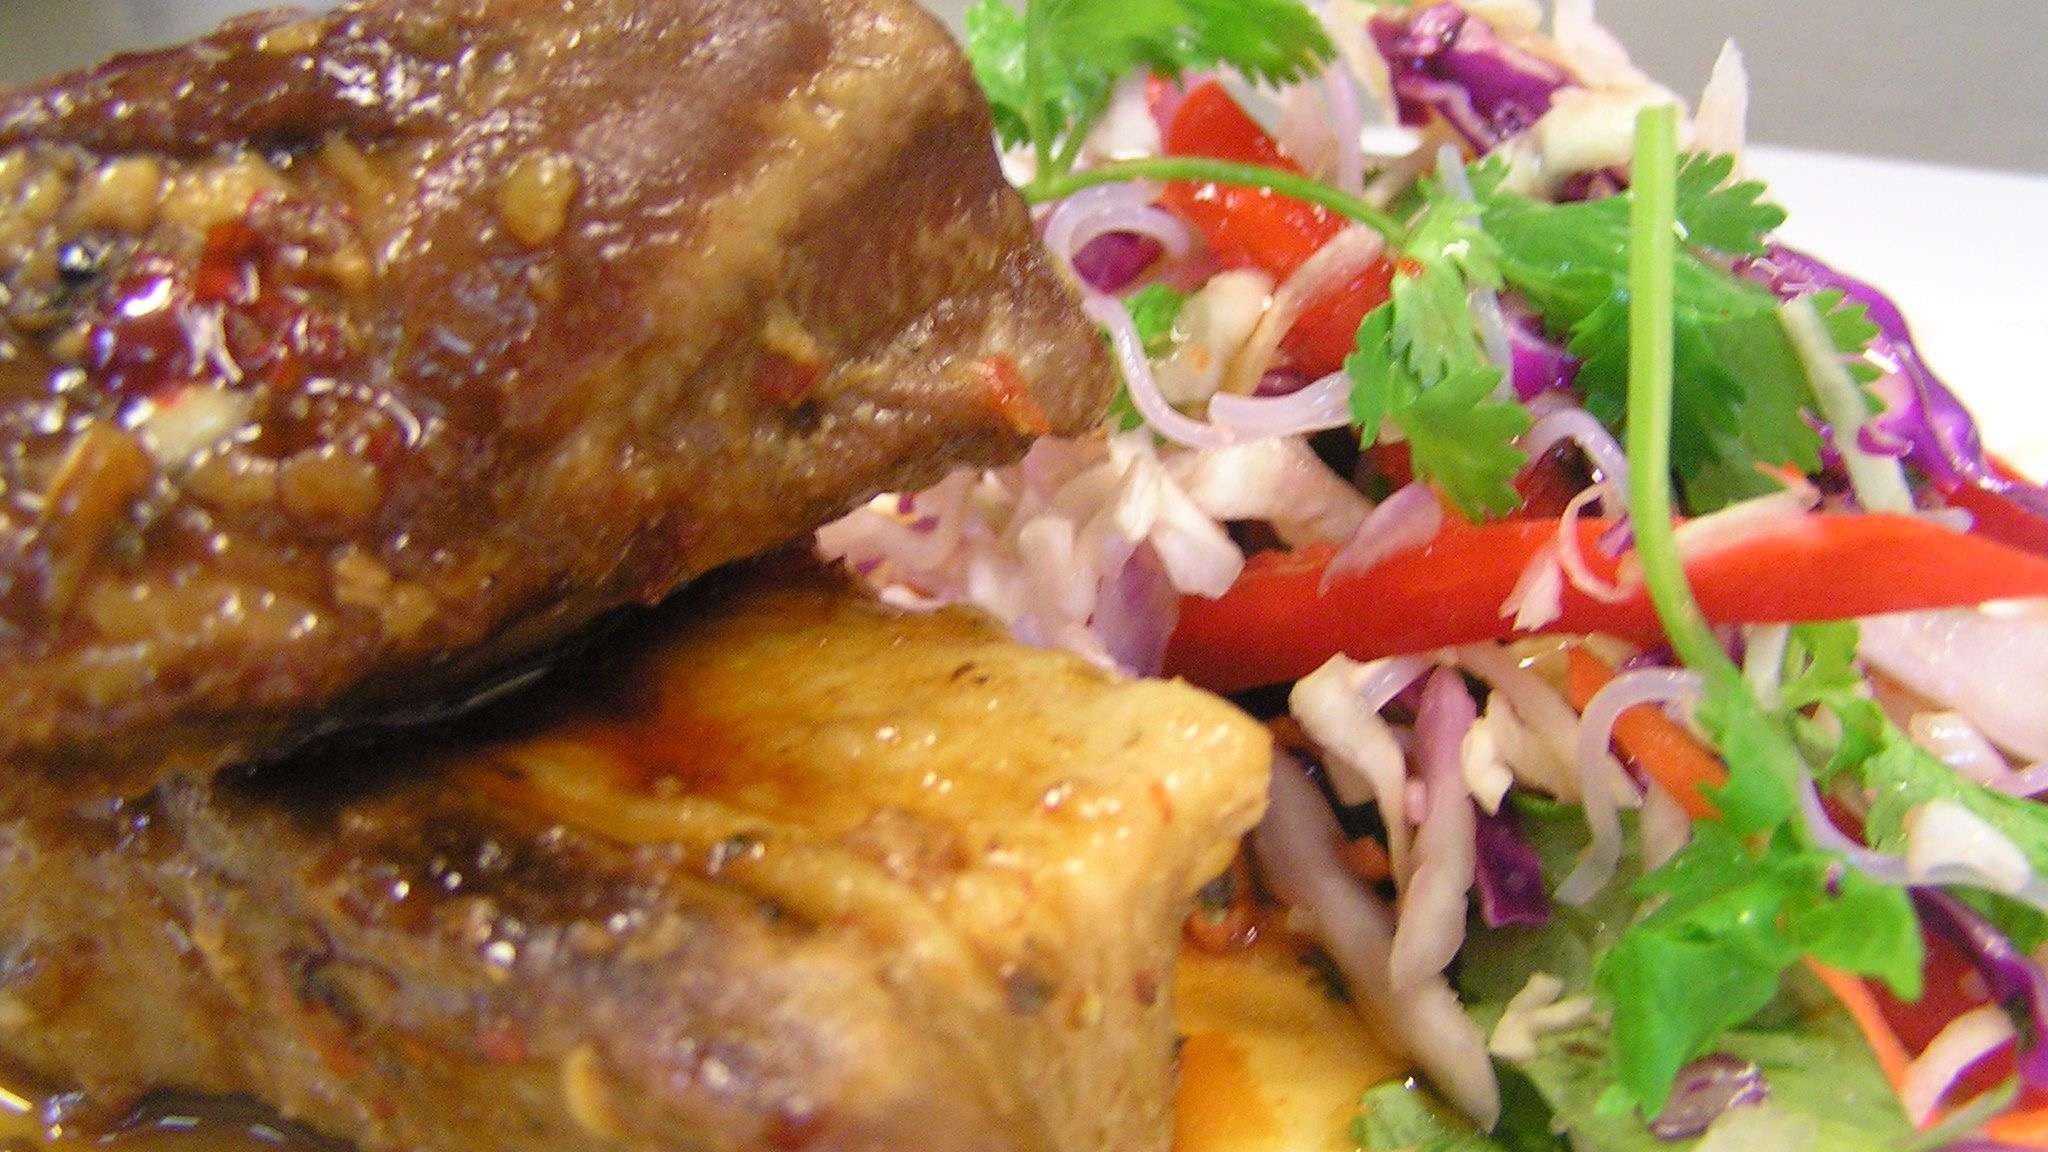 Pork belly with asian slaw